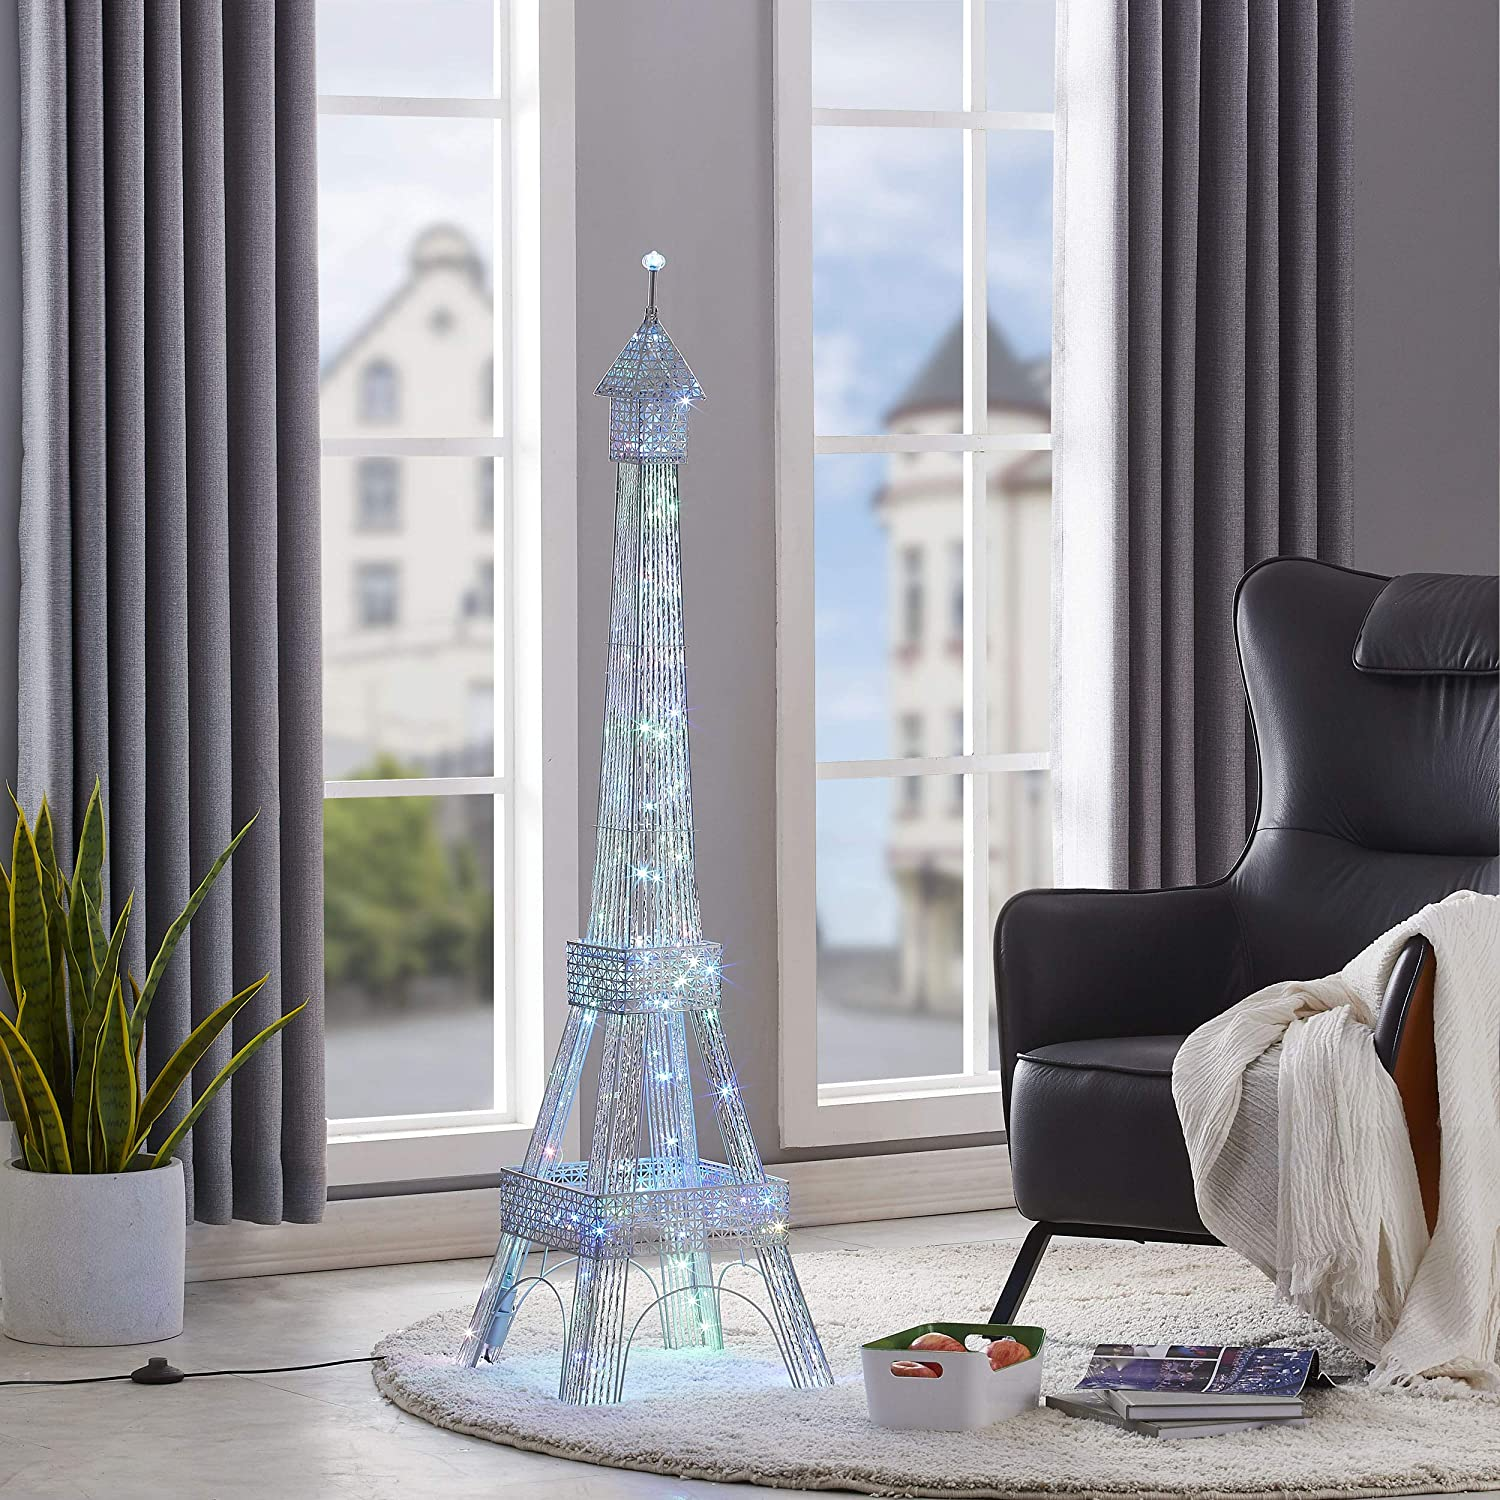 WOXXX Paris Eiffel Tower Floor Lamp with Led Twinkle String Lights 7 Color Changing Modern Floor Lamps for Living Room, Bedrooms Christmas Decorations Tall Stand Up Lamp New Year Standing Lamp